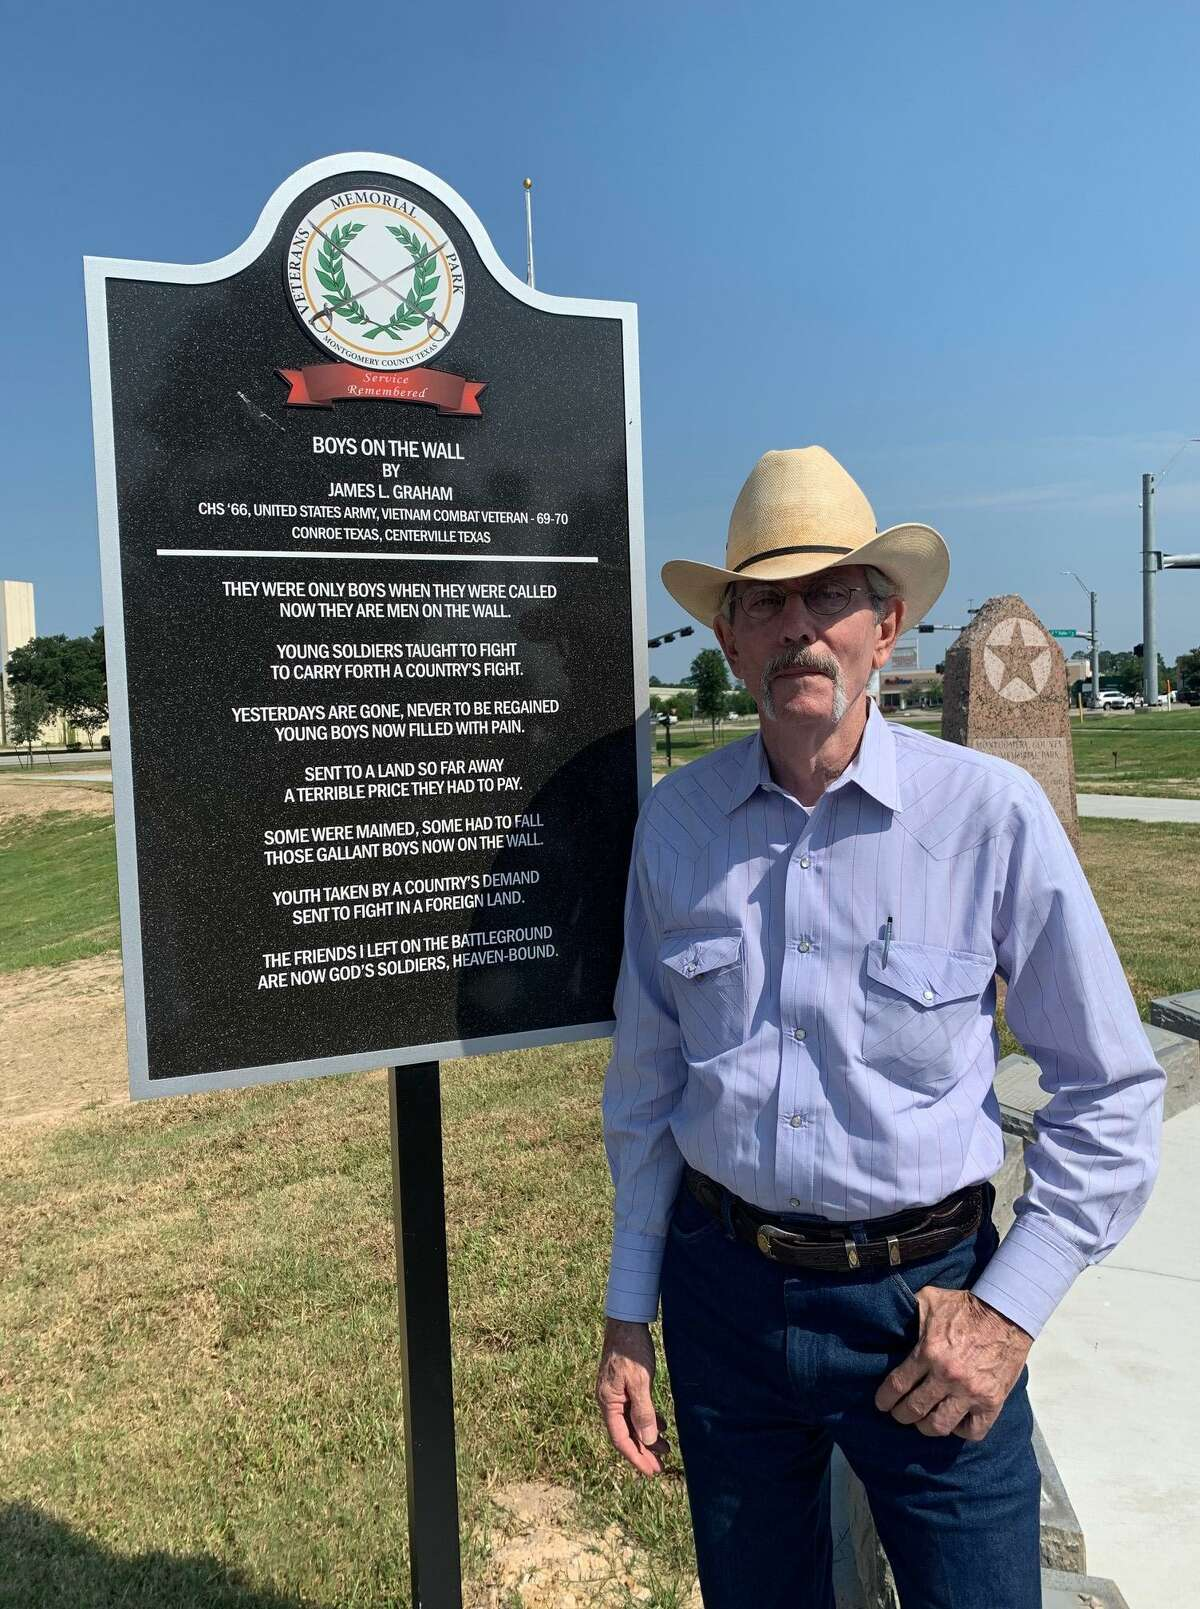 """On Monday, Mayor Jody Czajkoski and members of the Conroe City Council, the local Army unit and members of the Montgomery County Veteran's Memorial Commission celebrated the birthday of the U.S. Army at the newly dedicated Veteran's Memorial Park in Conroe. Pictured is James Graham who wrote the poem """"Boys on the Wall."""" Graham and Judge Jimmie Edwards III were classmates at Conroe high."""